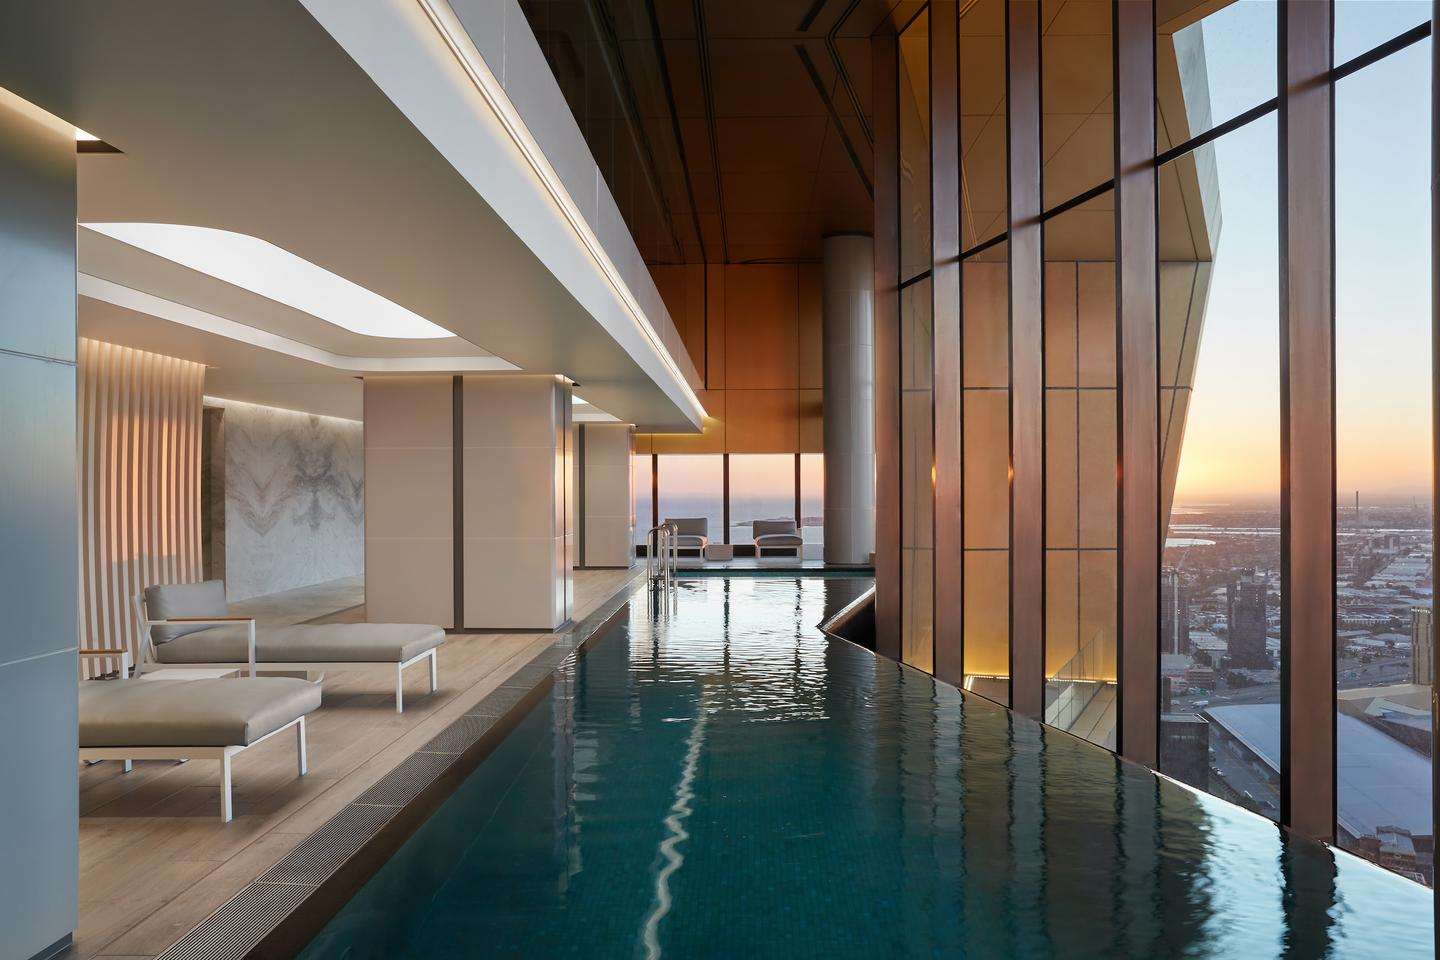 As well as the pool pictured, the Starburst hosts lounges, meeting spaces, dining rooms, a theater, two gyms, and a vertical sky-garden